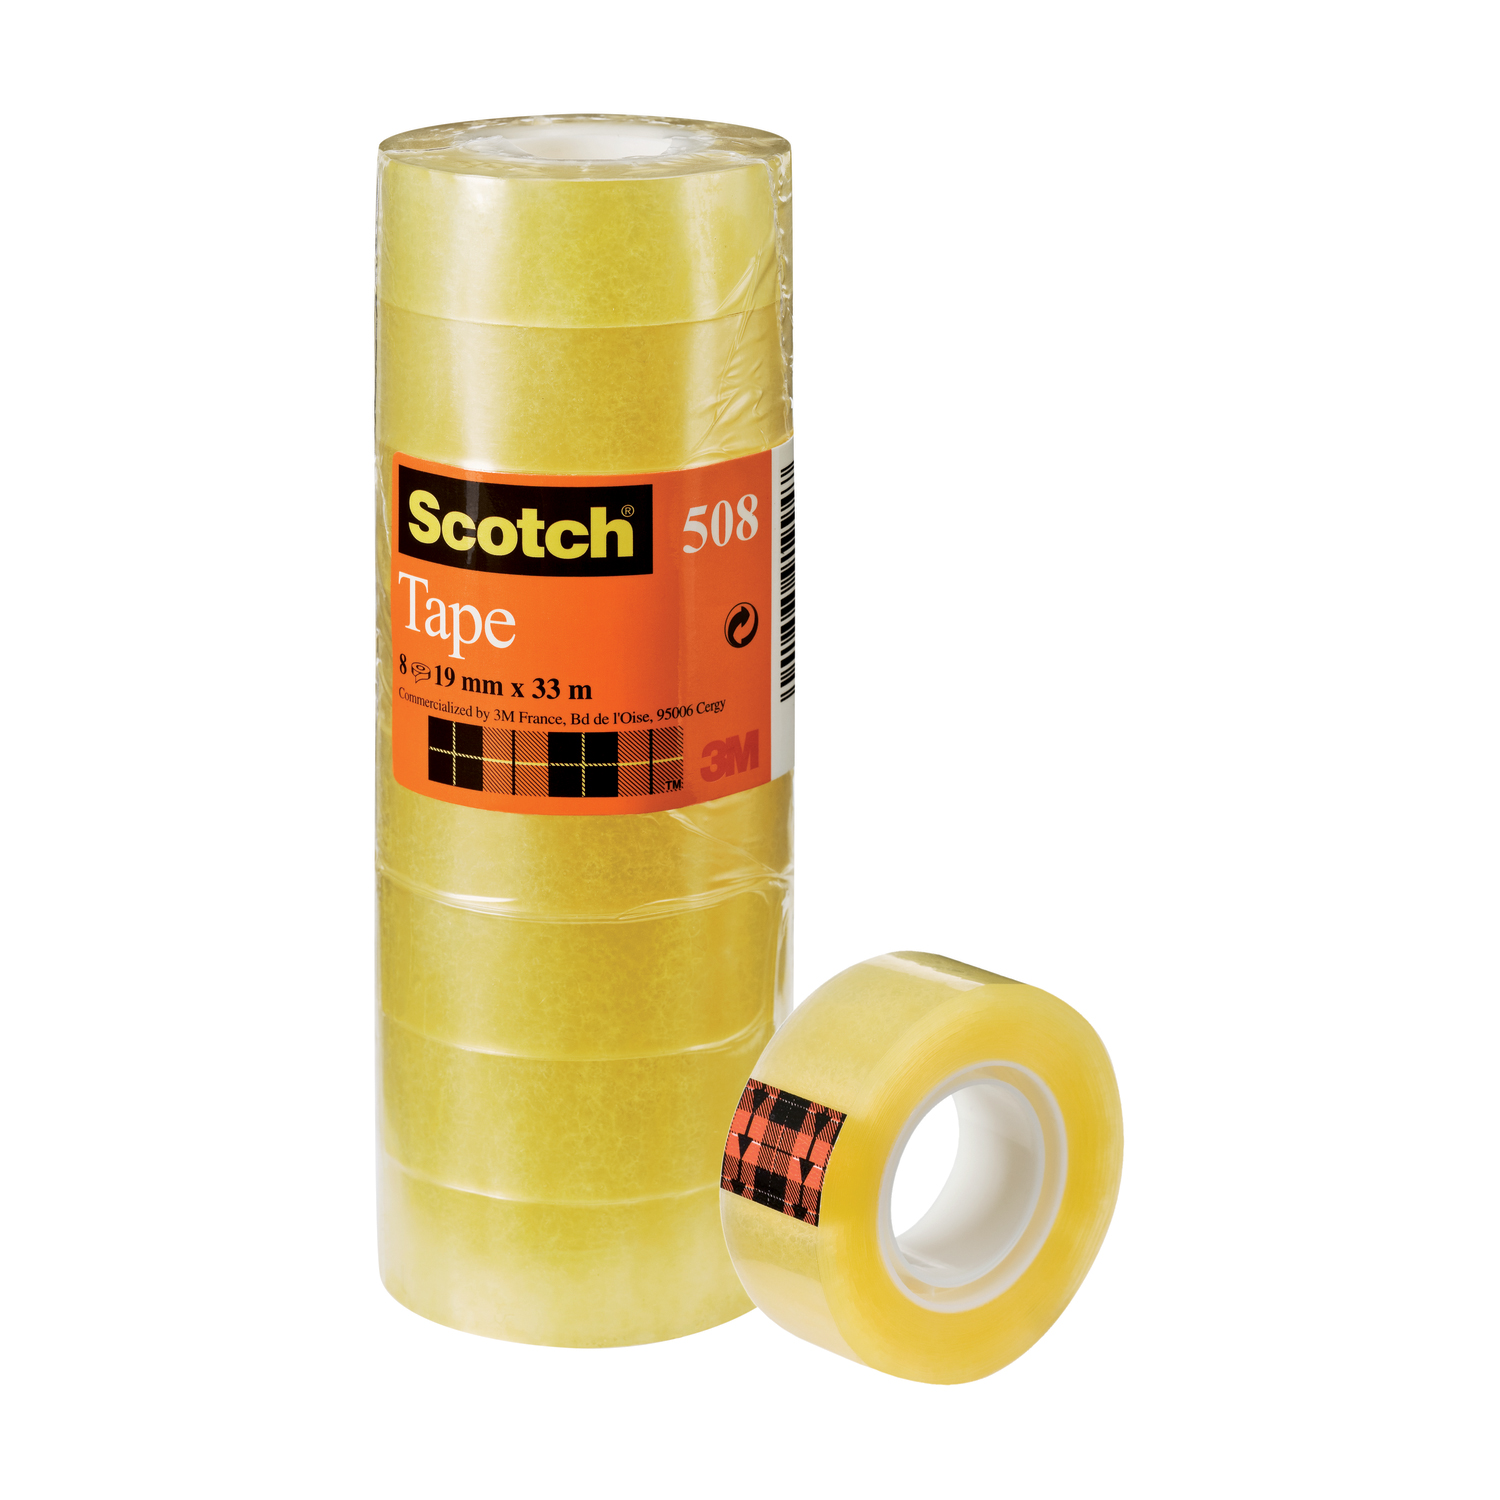 Transparent tape Scotch 508 Clear Tape 19mmx33m Clear Ref 7000033901 Pack 8